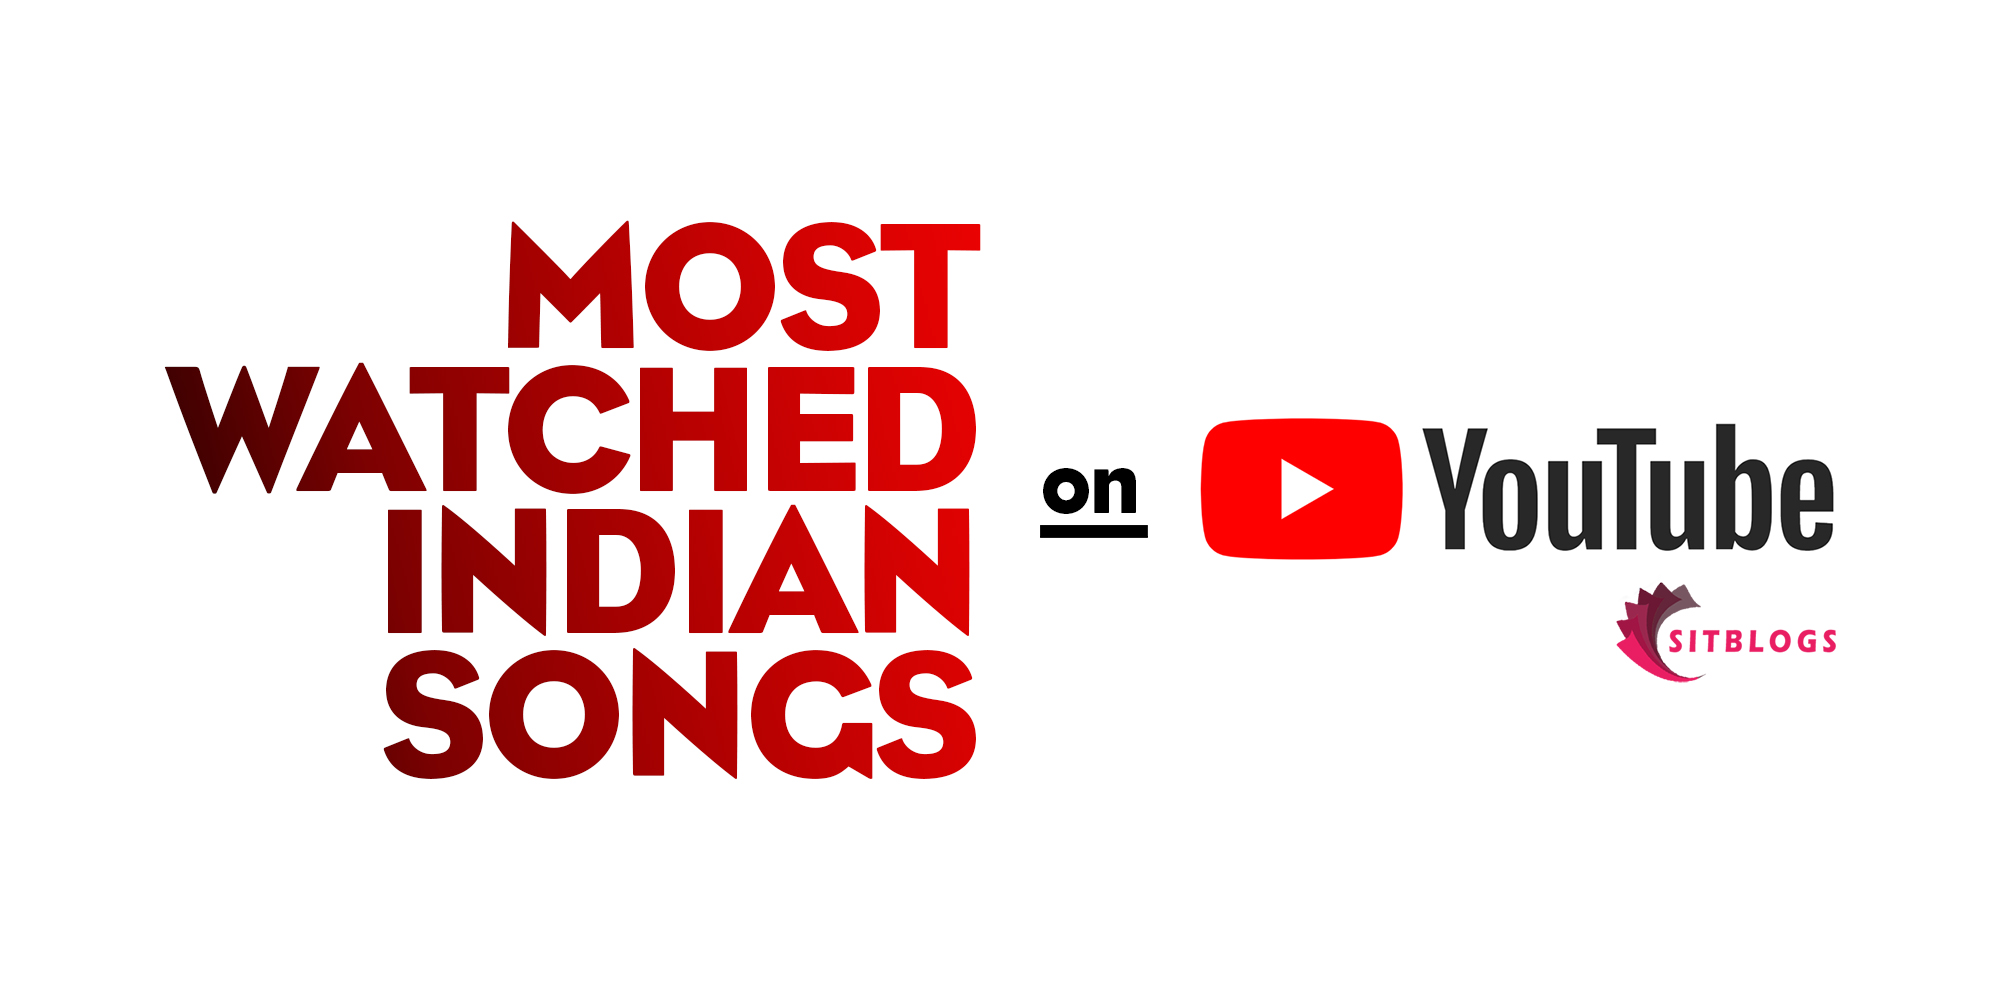 most viewed indian song on youtube sitblogs and something is trending